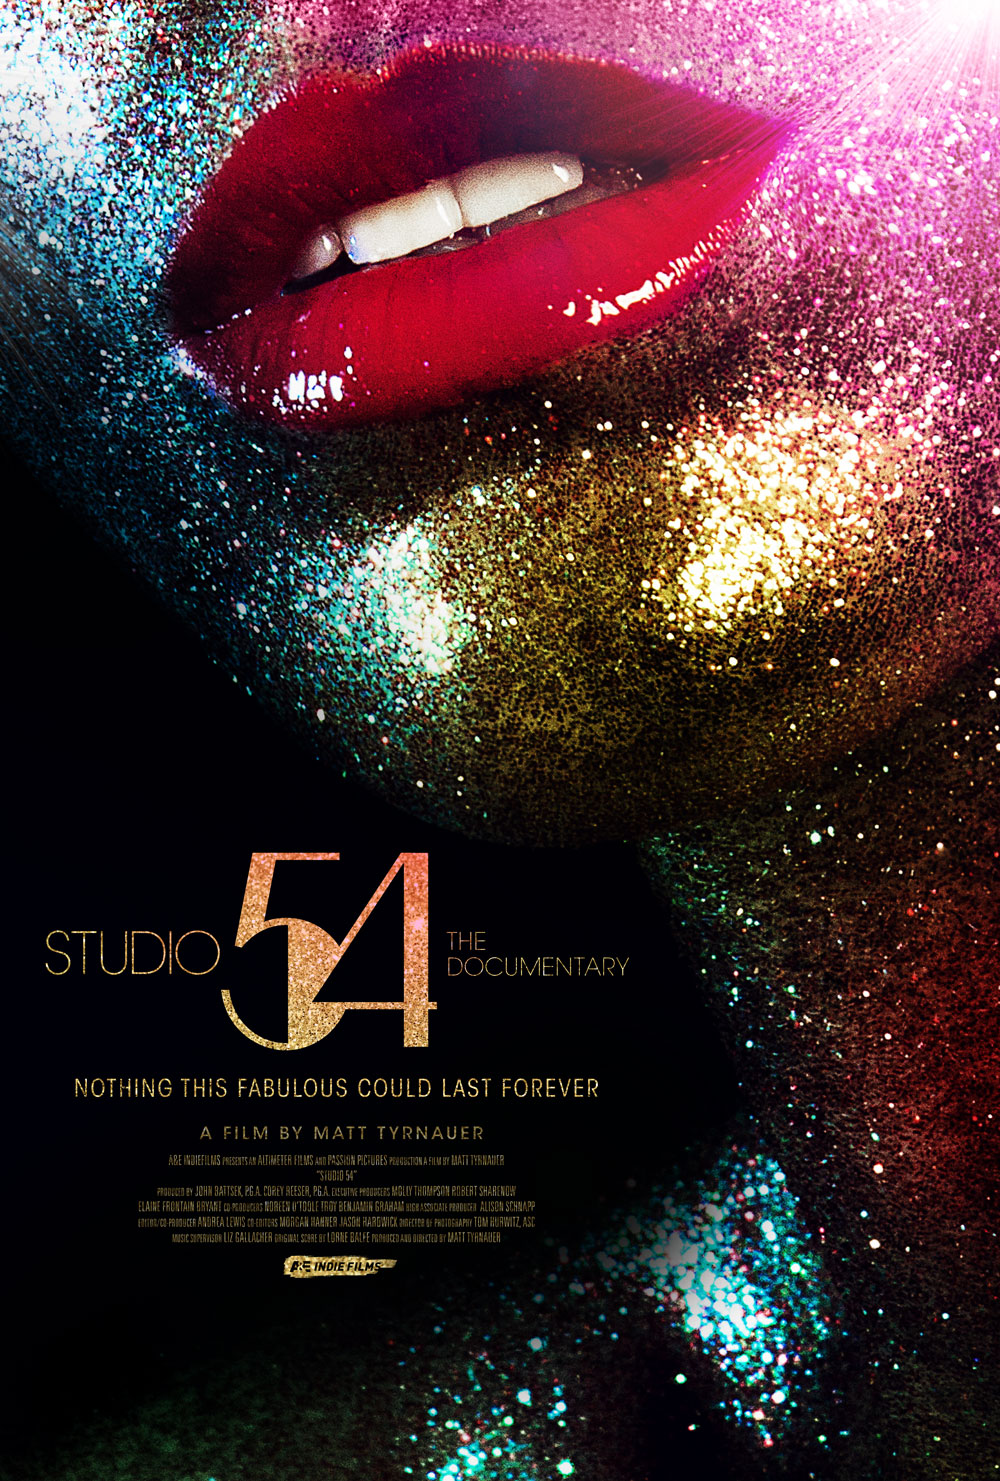 Freedom on the Dancefloor: A Review of Studio 54